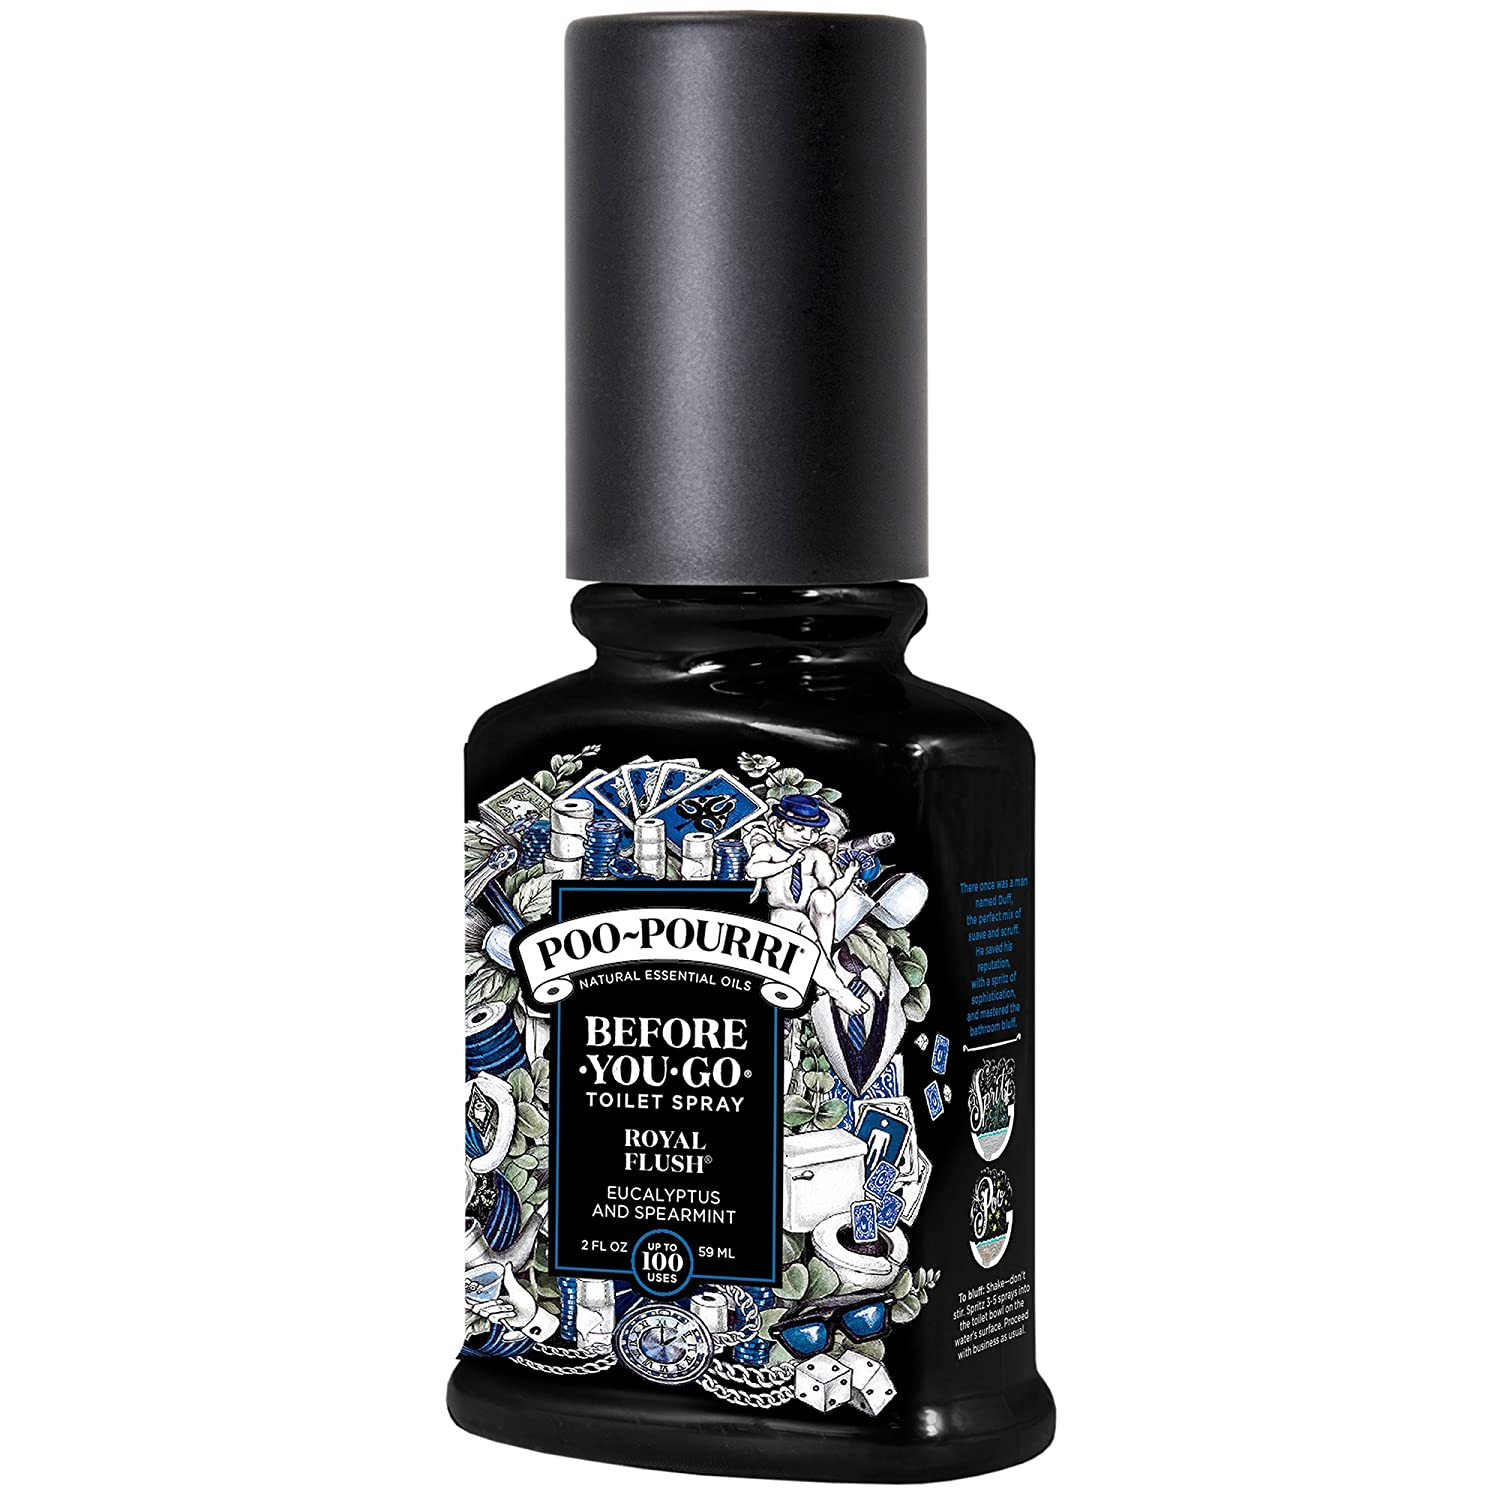 Poo-Pourri Before-You-Go Toilet Spray 10-ML Travel Size, Original Citrus Scent Poo~Pourri PP-10ML